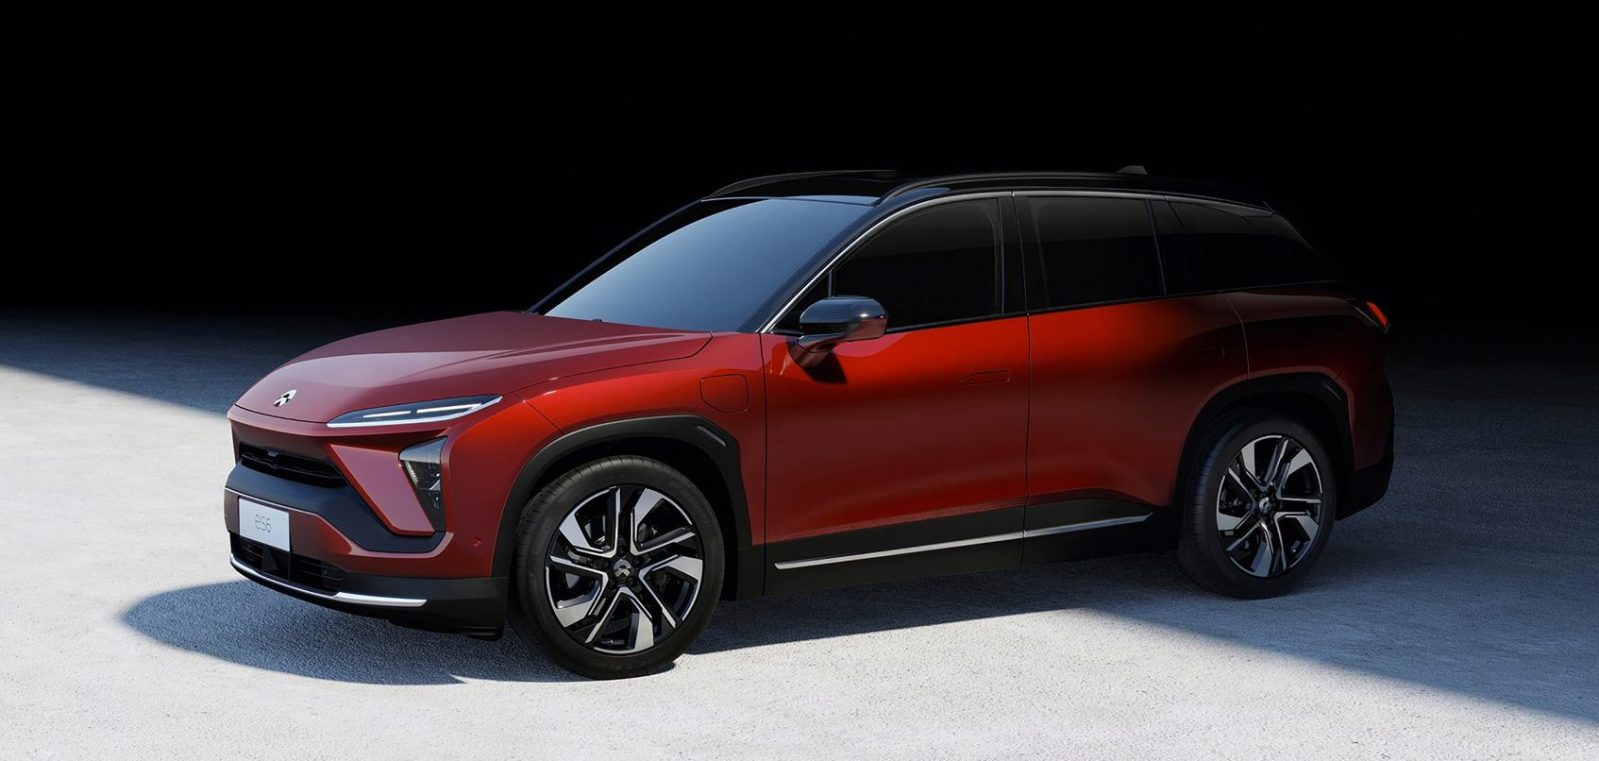 NIO launches new ES6 electric SUV for ~$50,000 - Electrek